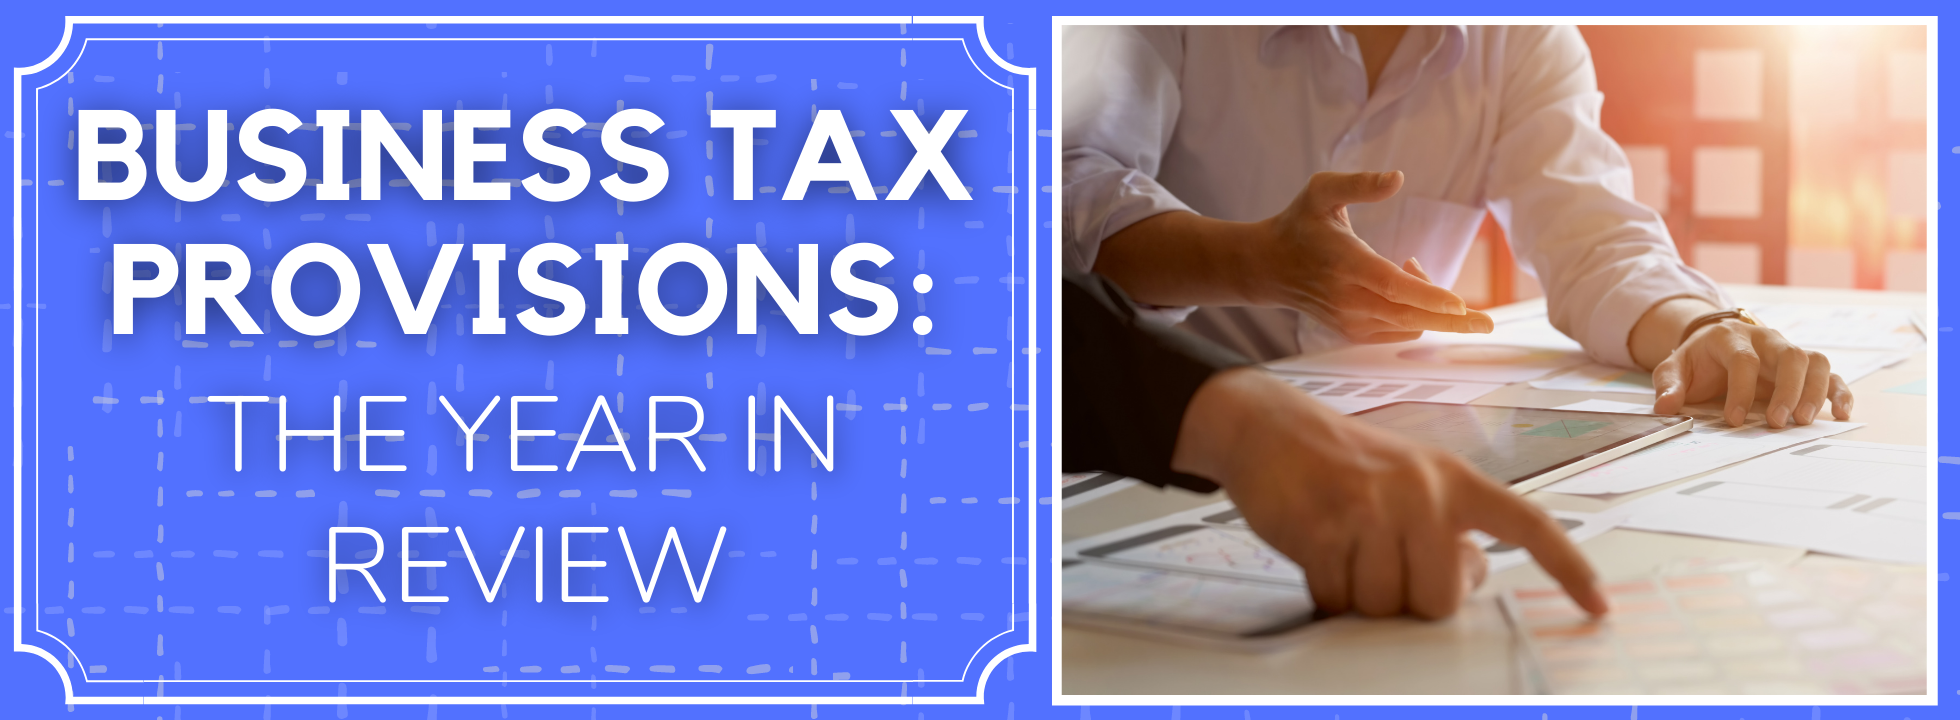 Business Tax Provisions_